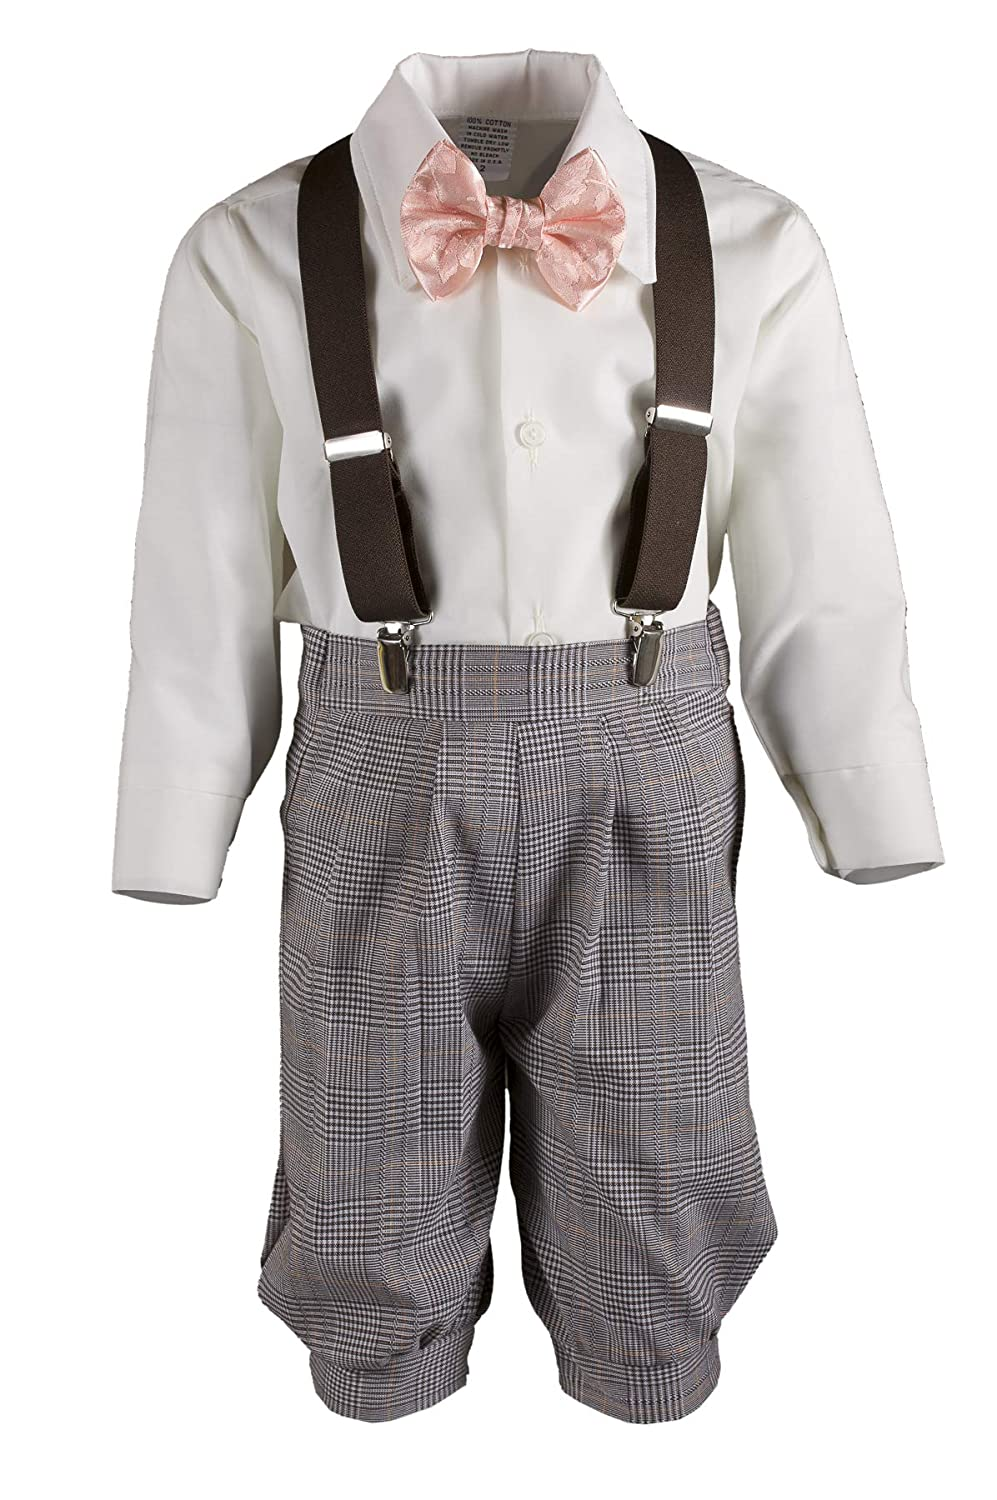 eebc73831be0 Amazon.com: Boys Brown Plaid Knickers Pageboy Cap with Rose Bow Tie &  Suspenders: Clothing